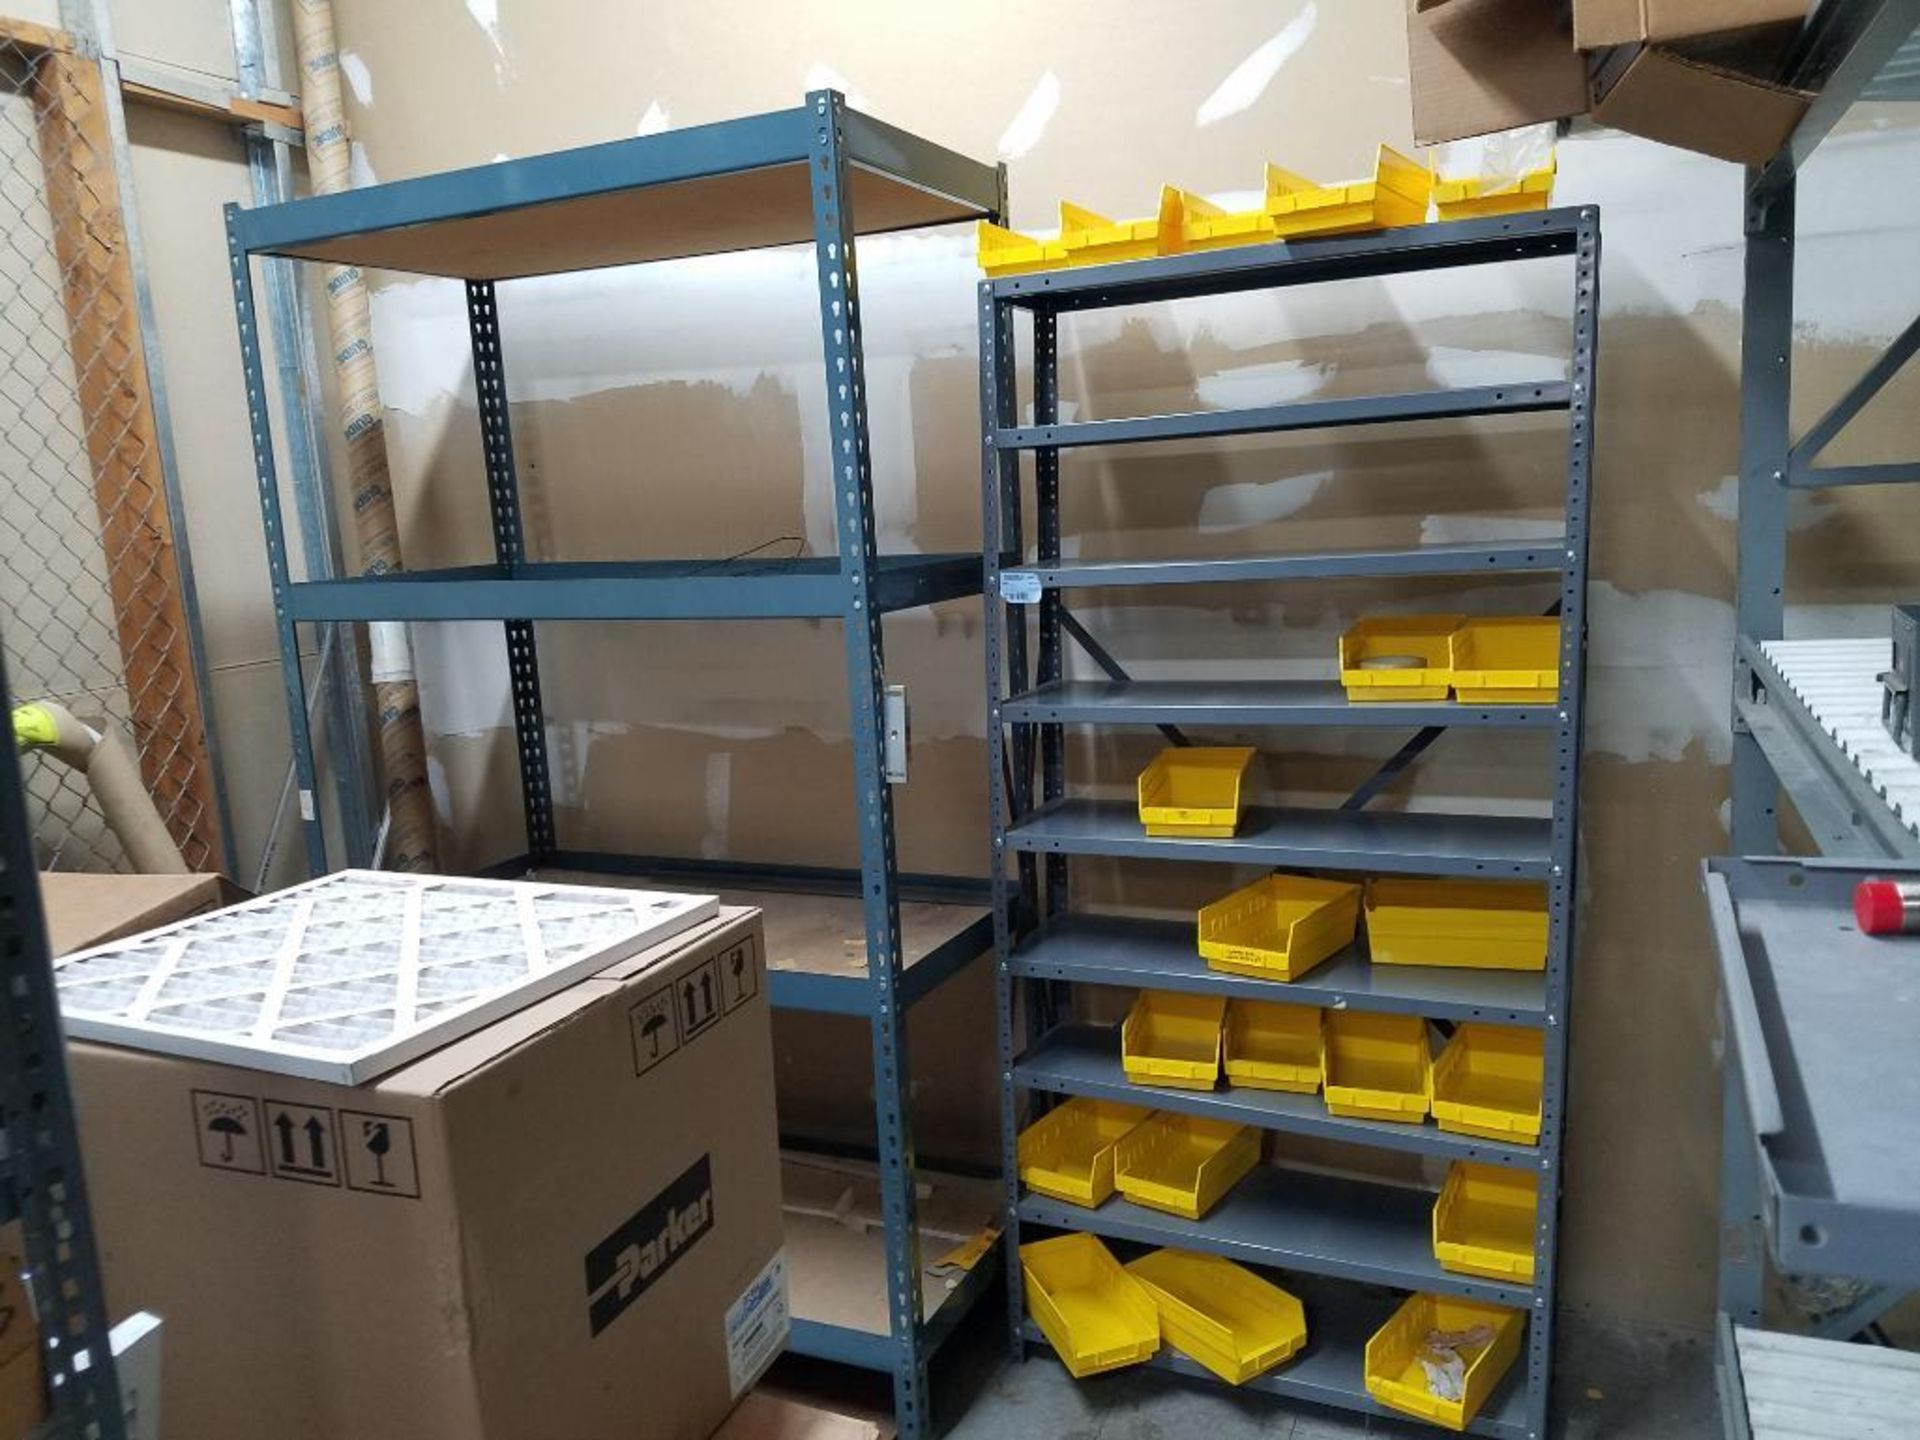 all shelving and storage units located in MRO room - Image 5 of 11